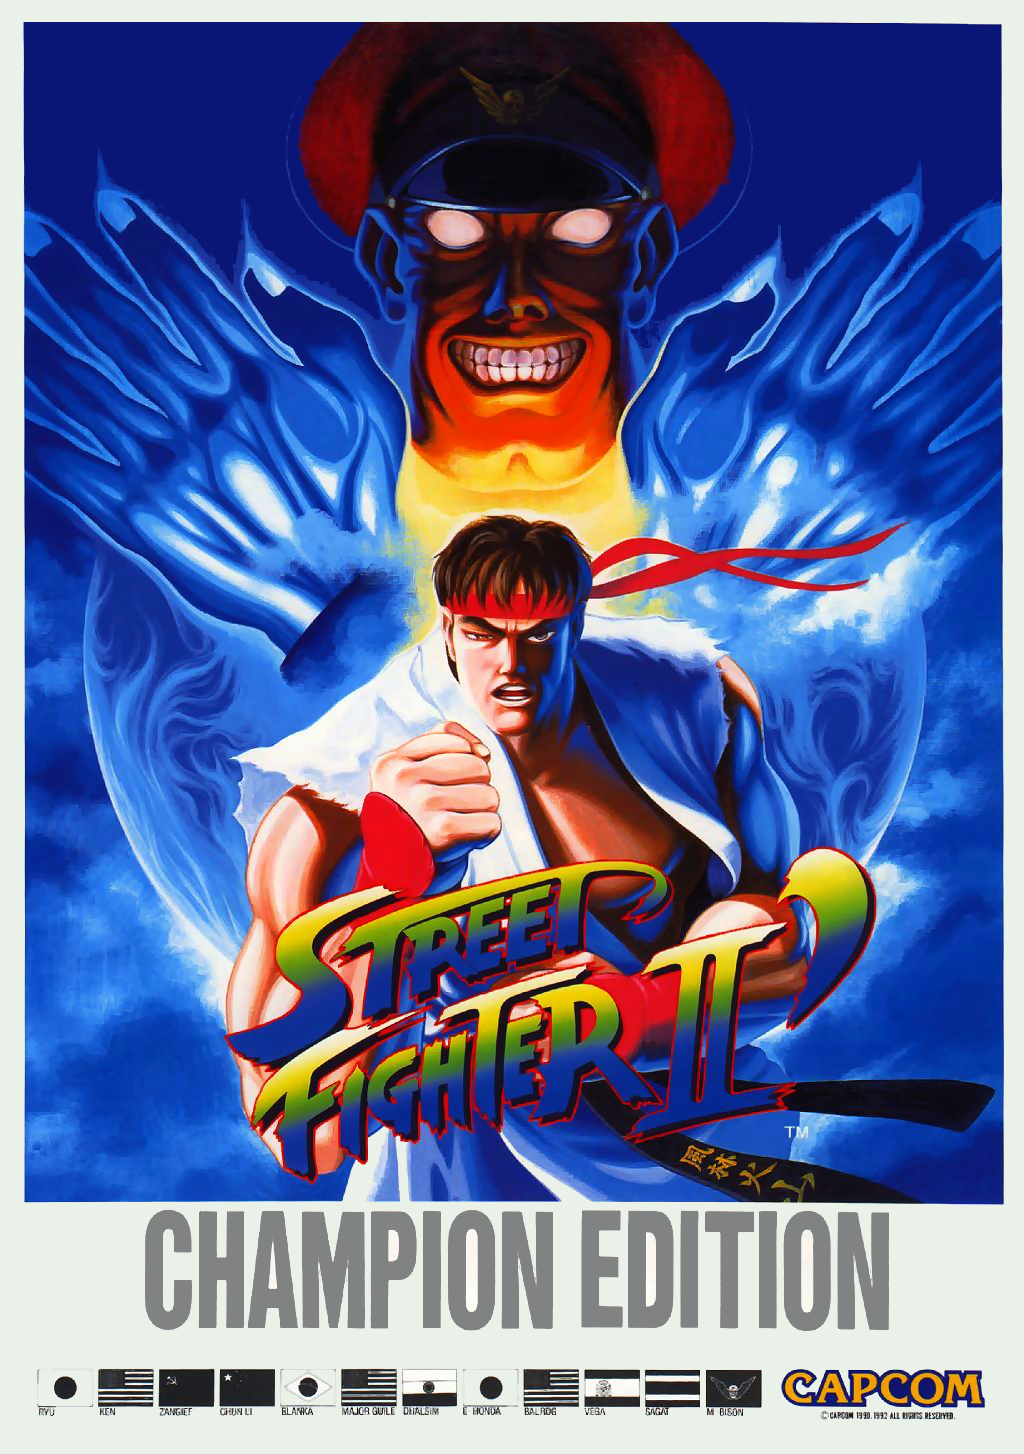 Street Fighter II': Champion Edition (World 920313) flyer